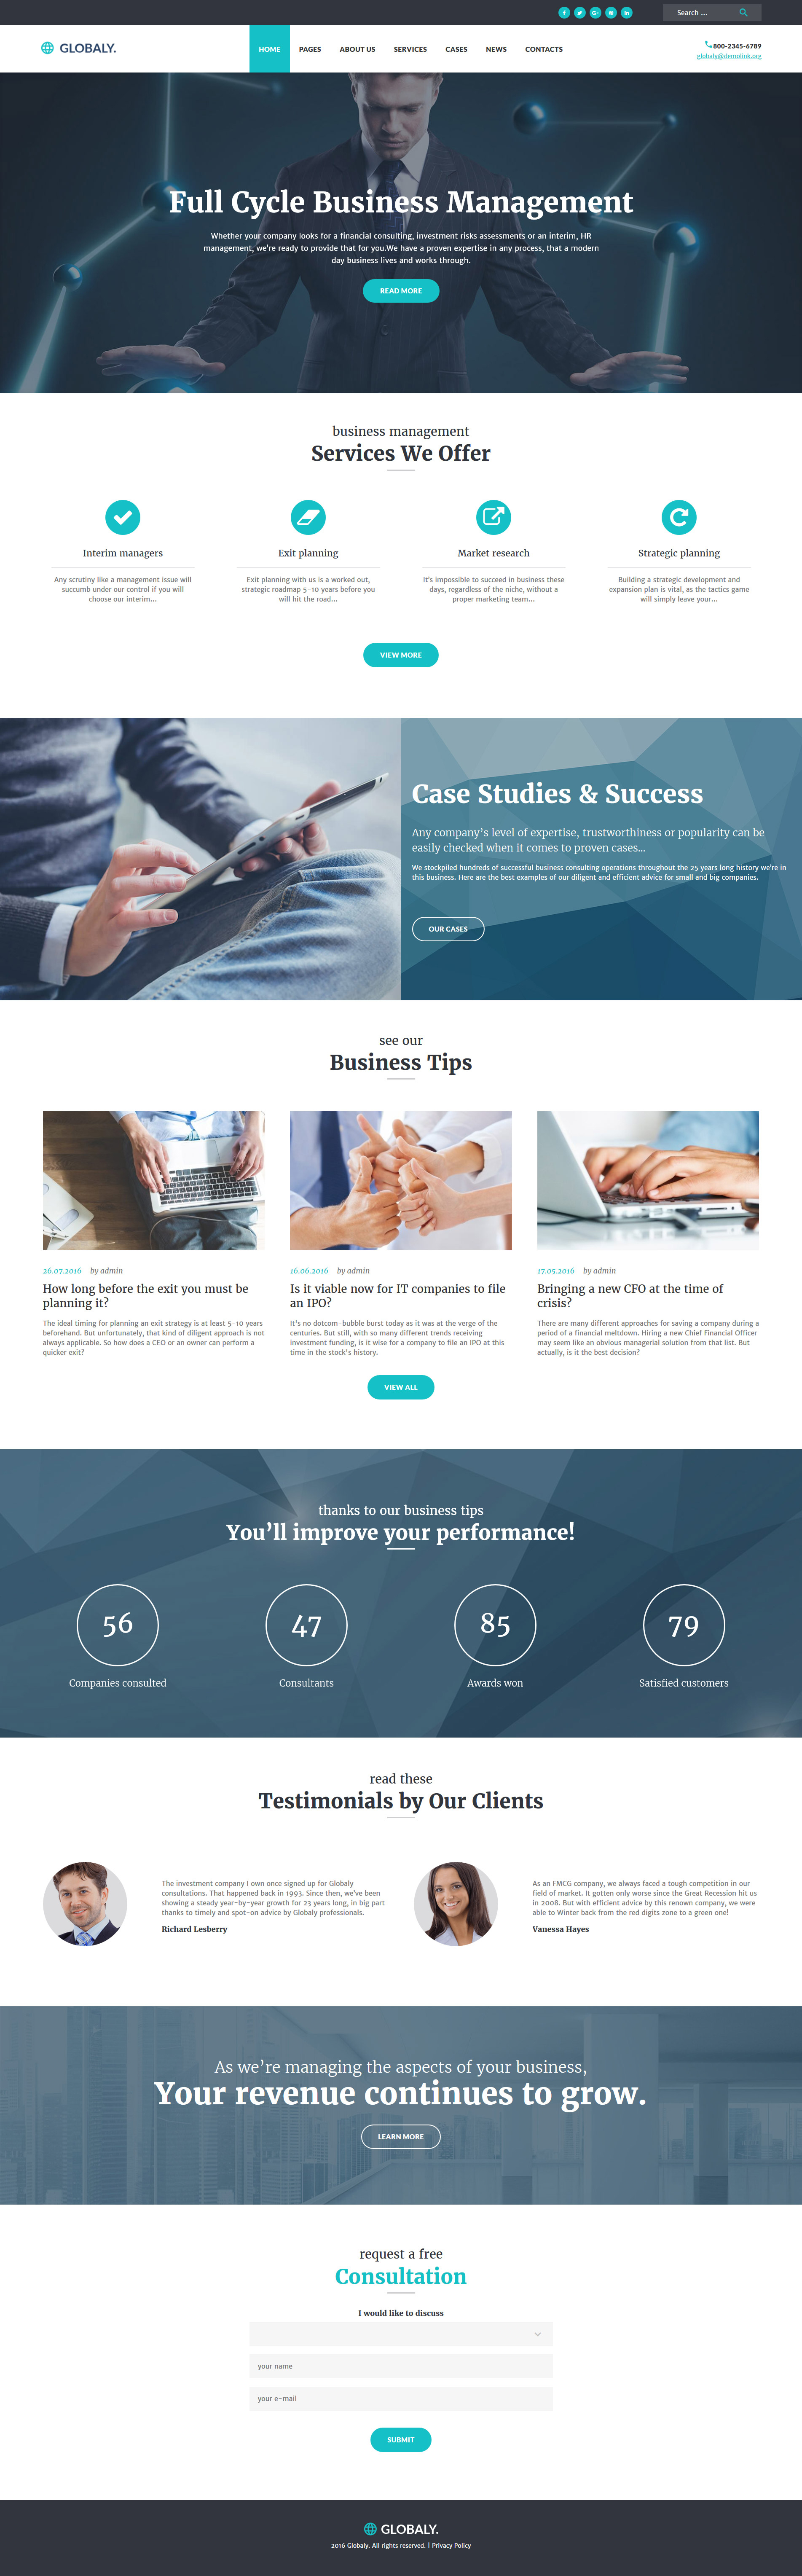 """Globaly - Full Cycle Business Management & Consulting Responsive"" 响应式WordPress模板 #52382 - 截图"